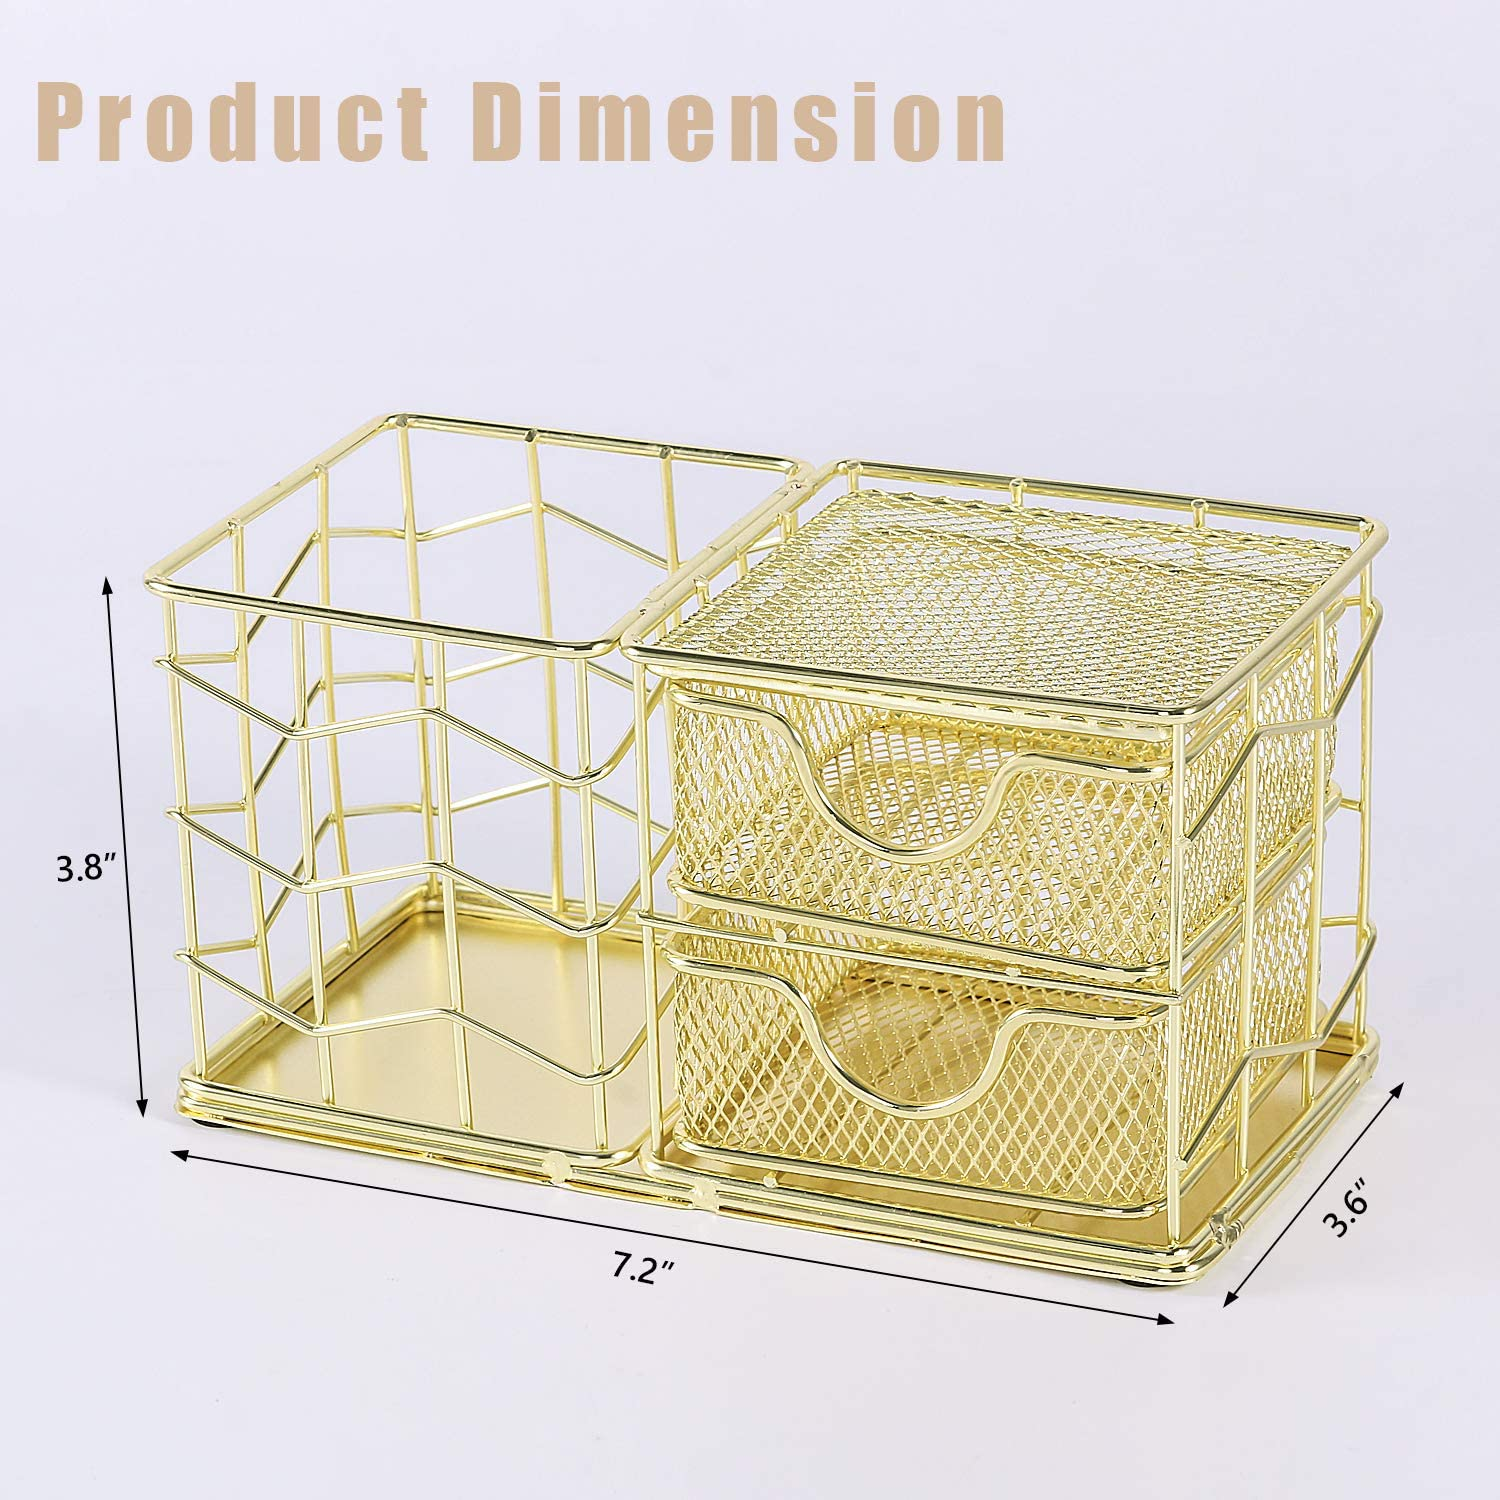 3 Compartments Pen Holder and 2 Sticky Note Holders Simmer Stone Desk Organizer with Drawers Gold Wire Desk Stationery Caddy for Desk Supplies and Accessories